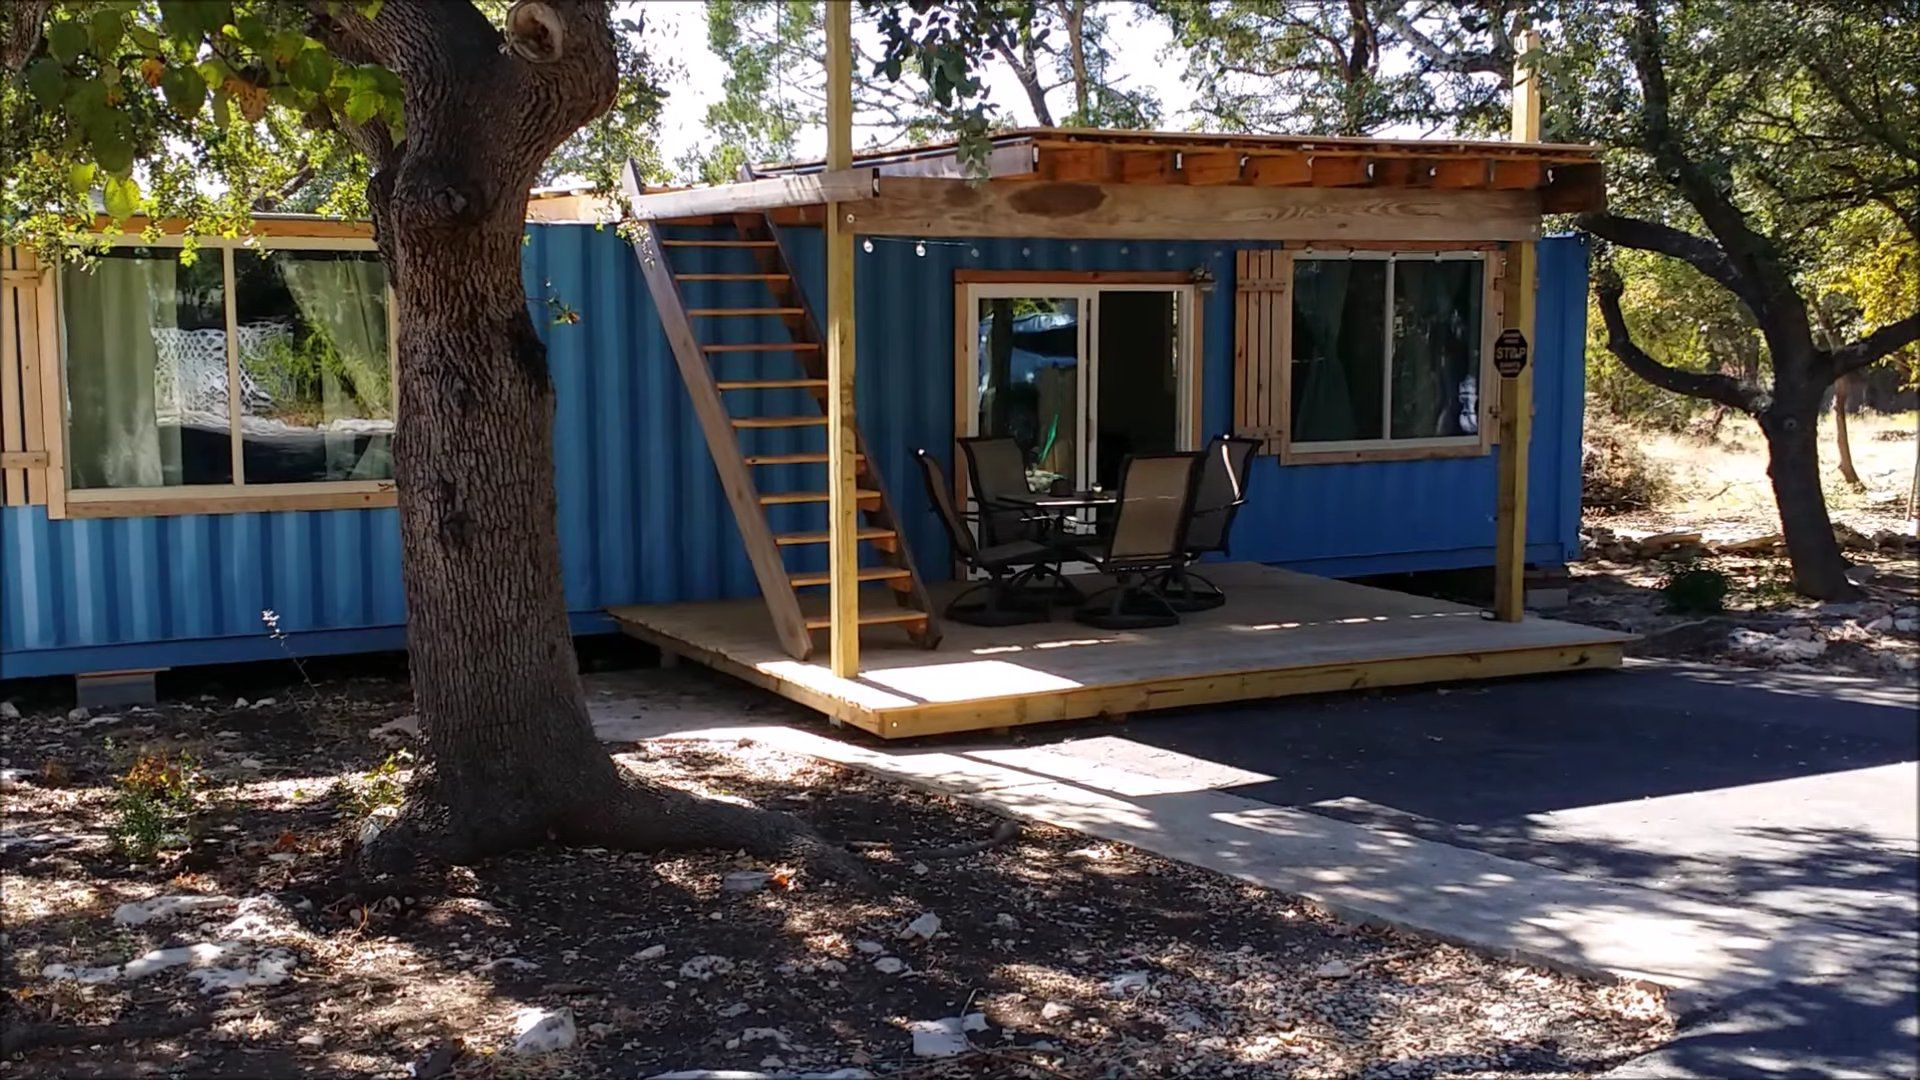 Place Metal Chairs and Table on Small Deck of Cargo Container Homes with Wooden Stairs and Blue Wall